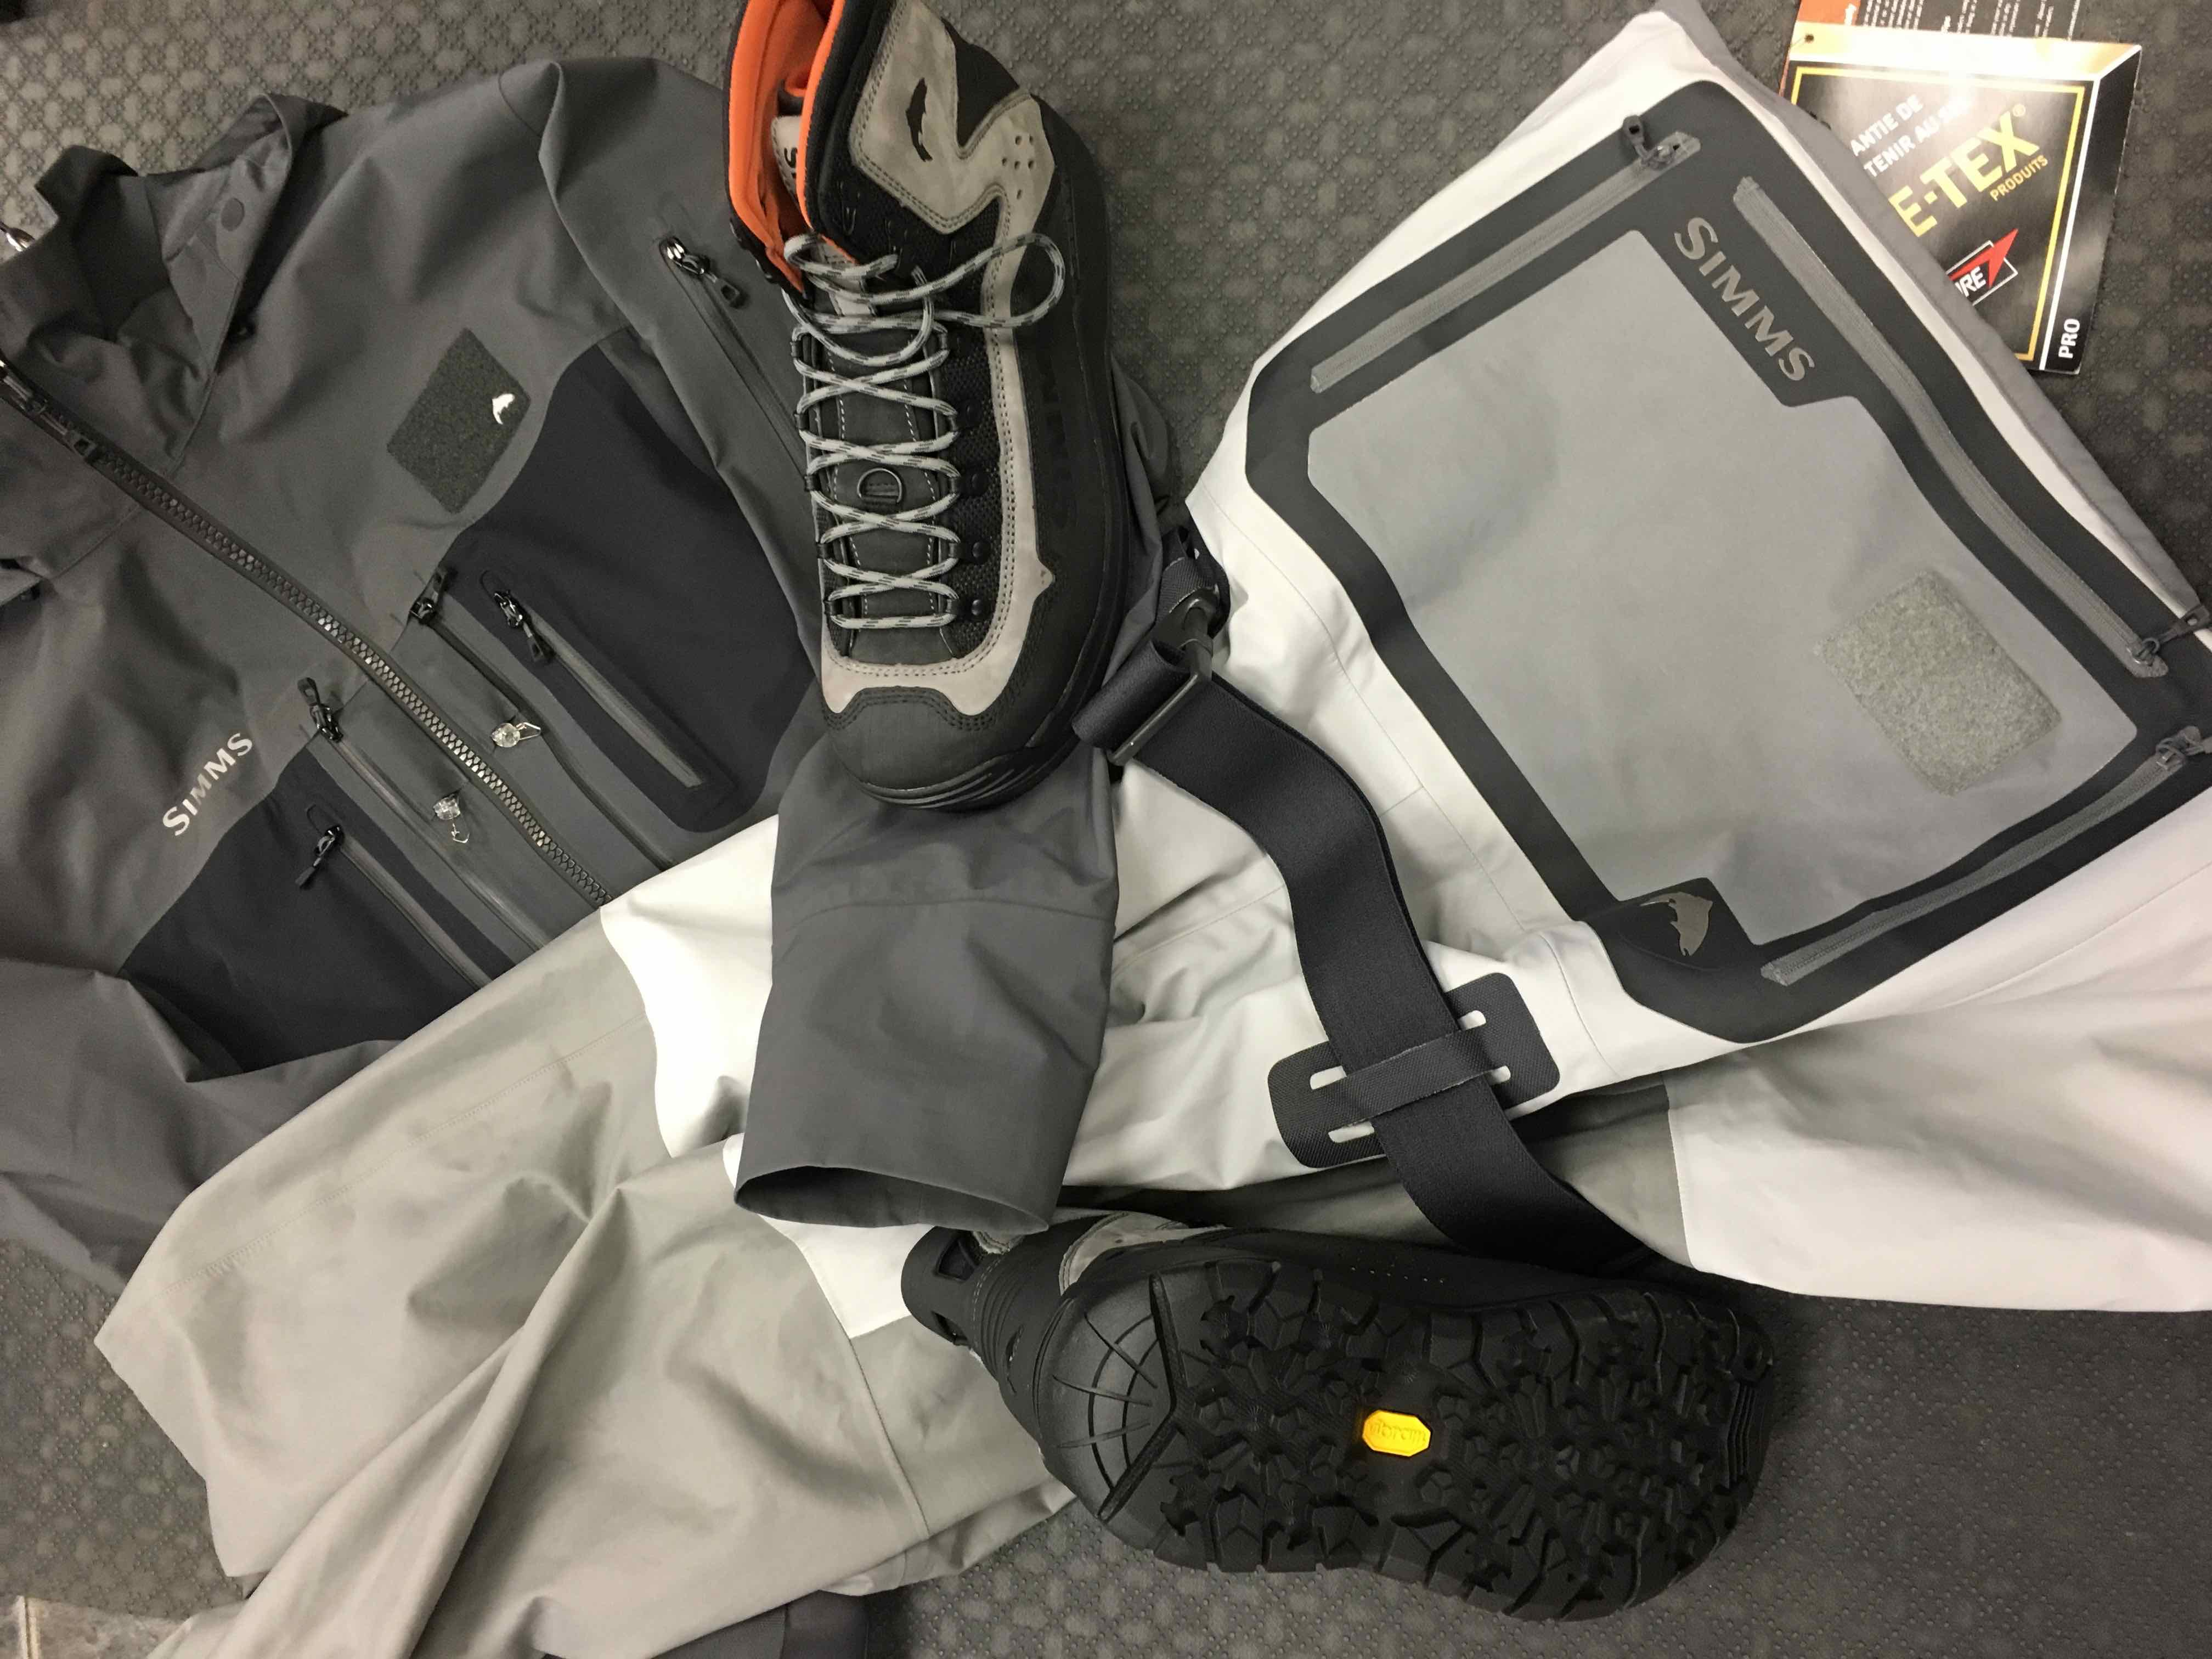 Simms 2018 G3 Series: Simms G3 Waders, Simms G3 Jacket & Simms G3 Wading Boots! Scheduled Release of November 15th, 2017.